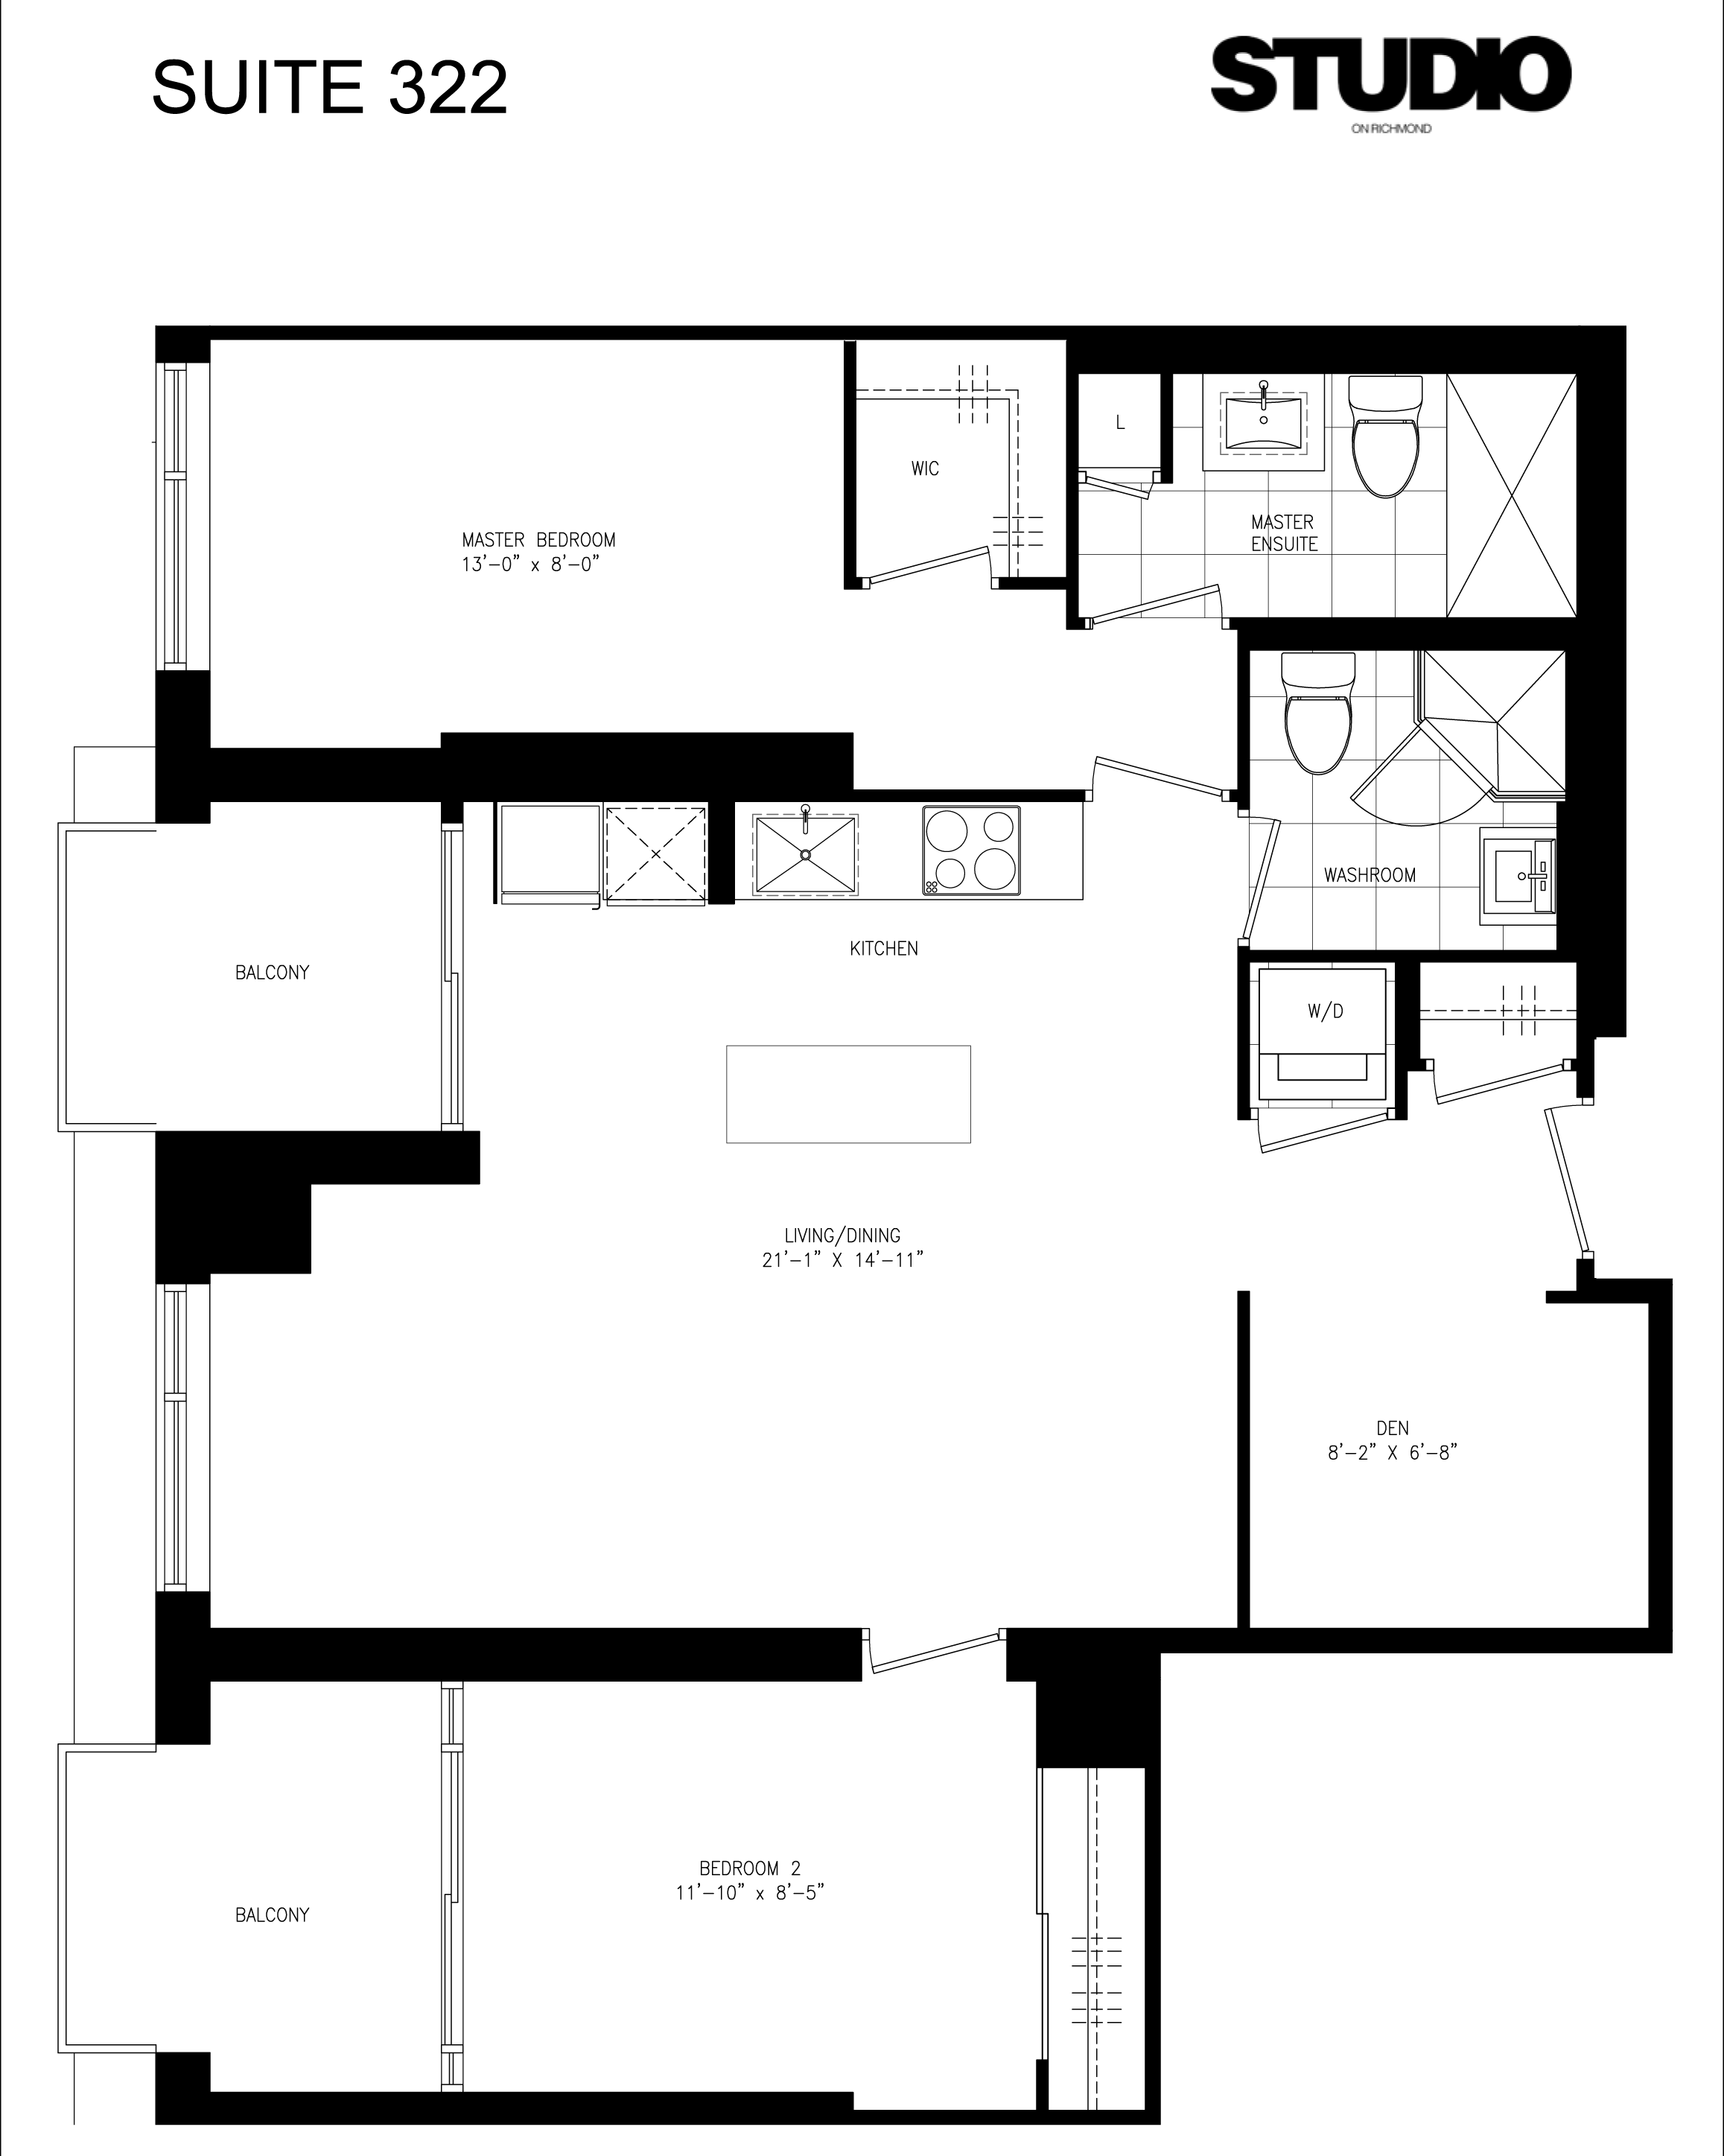 STUDIO CONDOS ON RICHMOND - FLOORPLANS